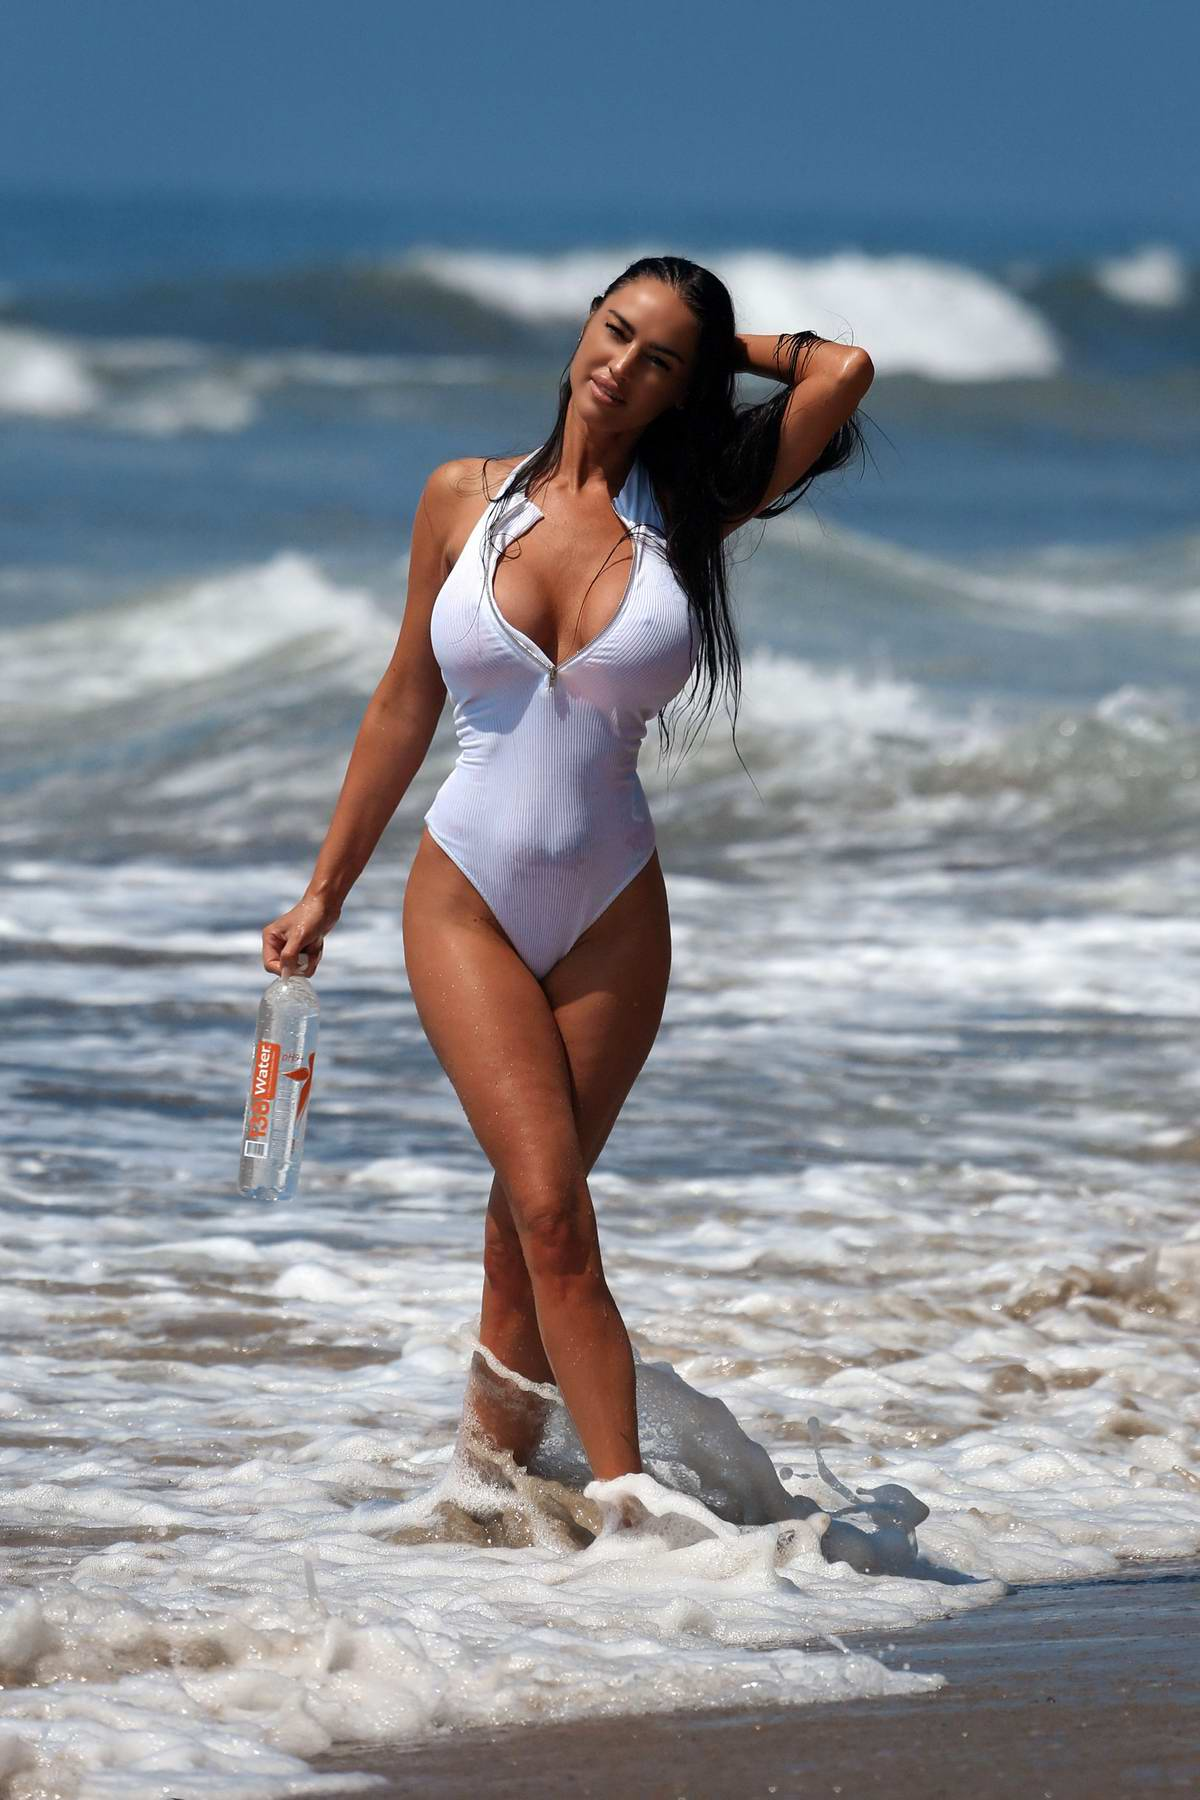 Charlie Riina seen wearing a white swimsuit during a beach photoshoot for 138 Water in Santa Monica, California